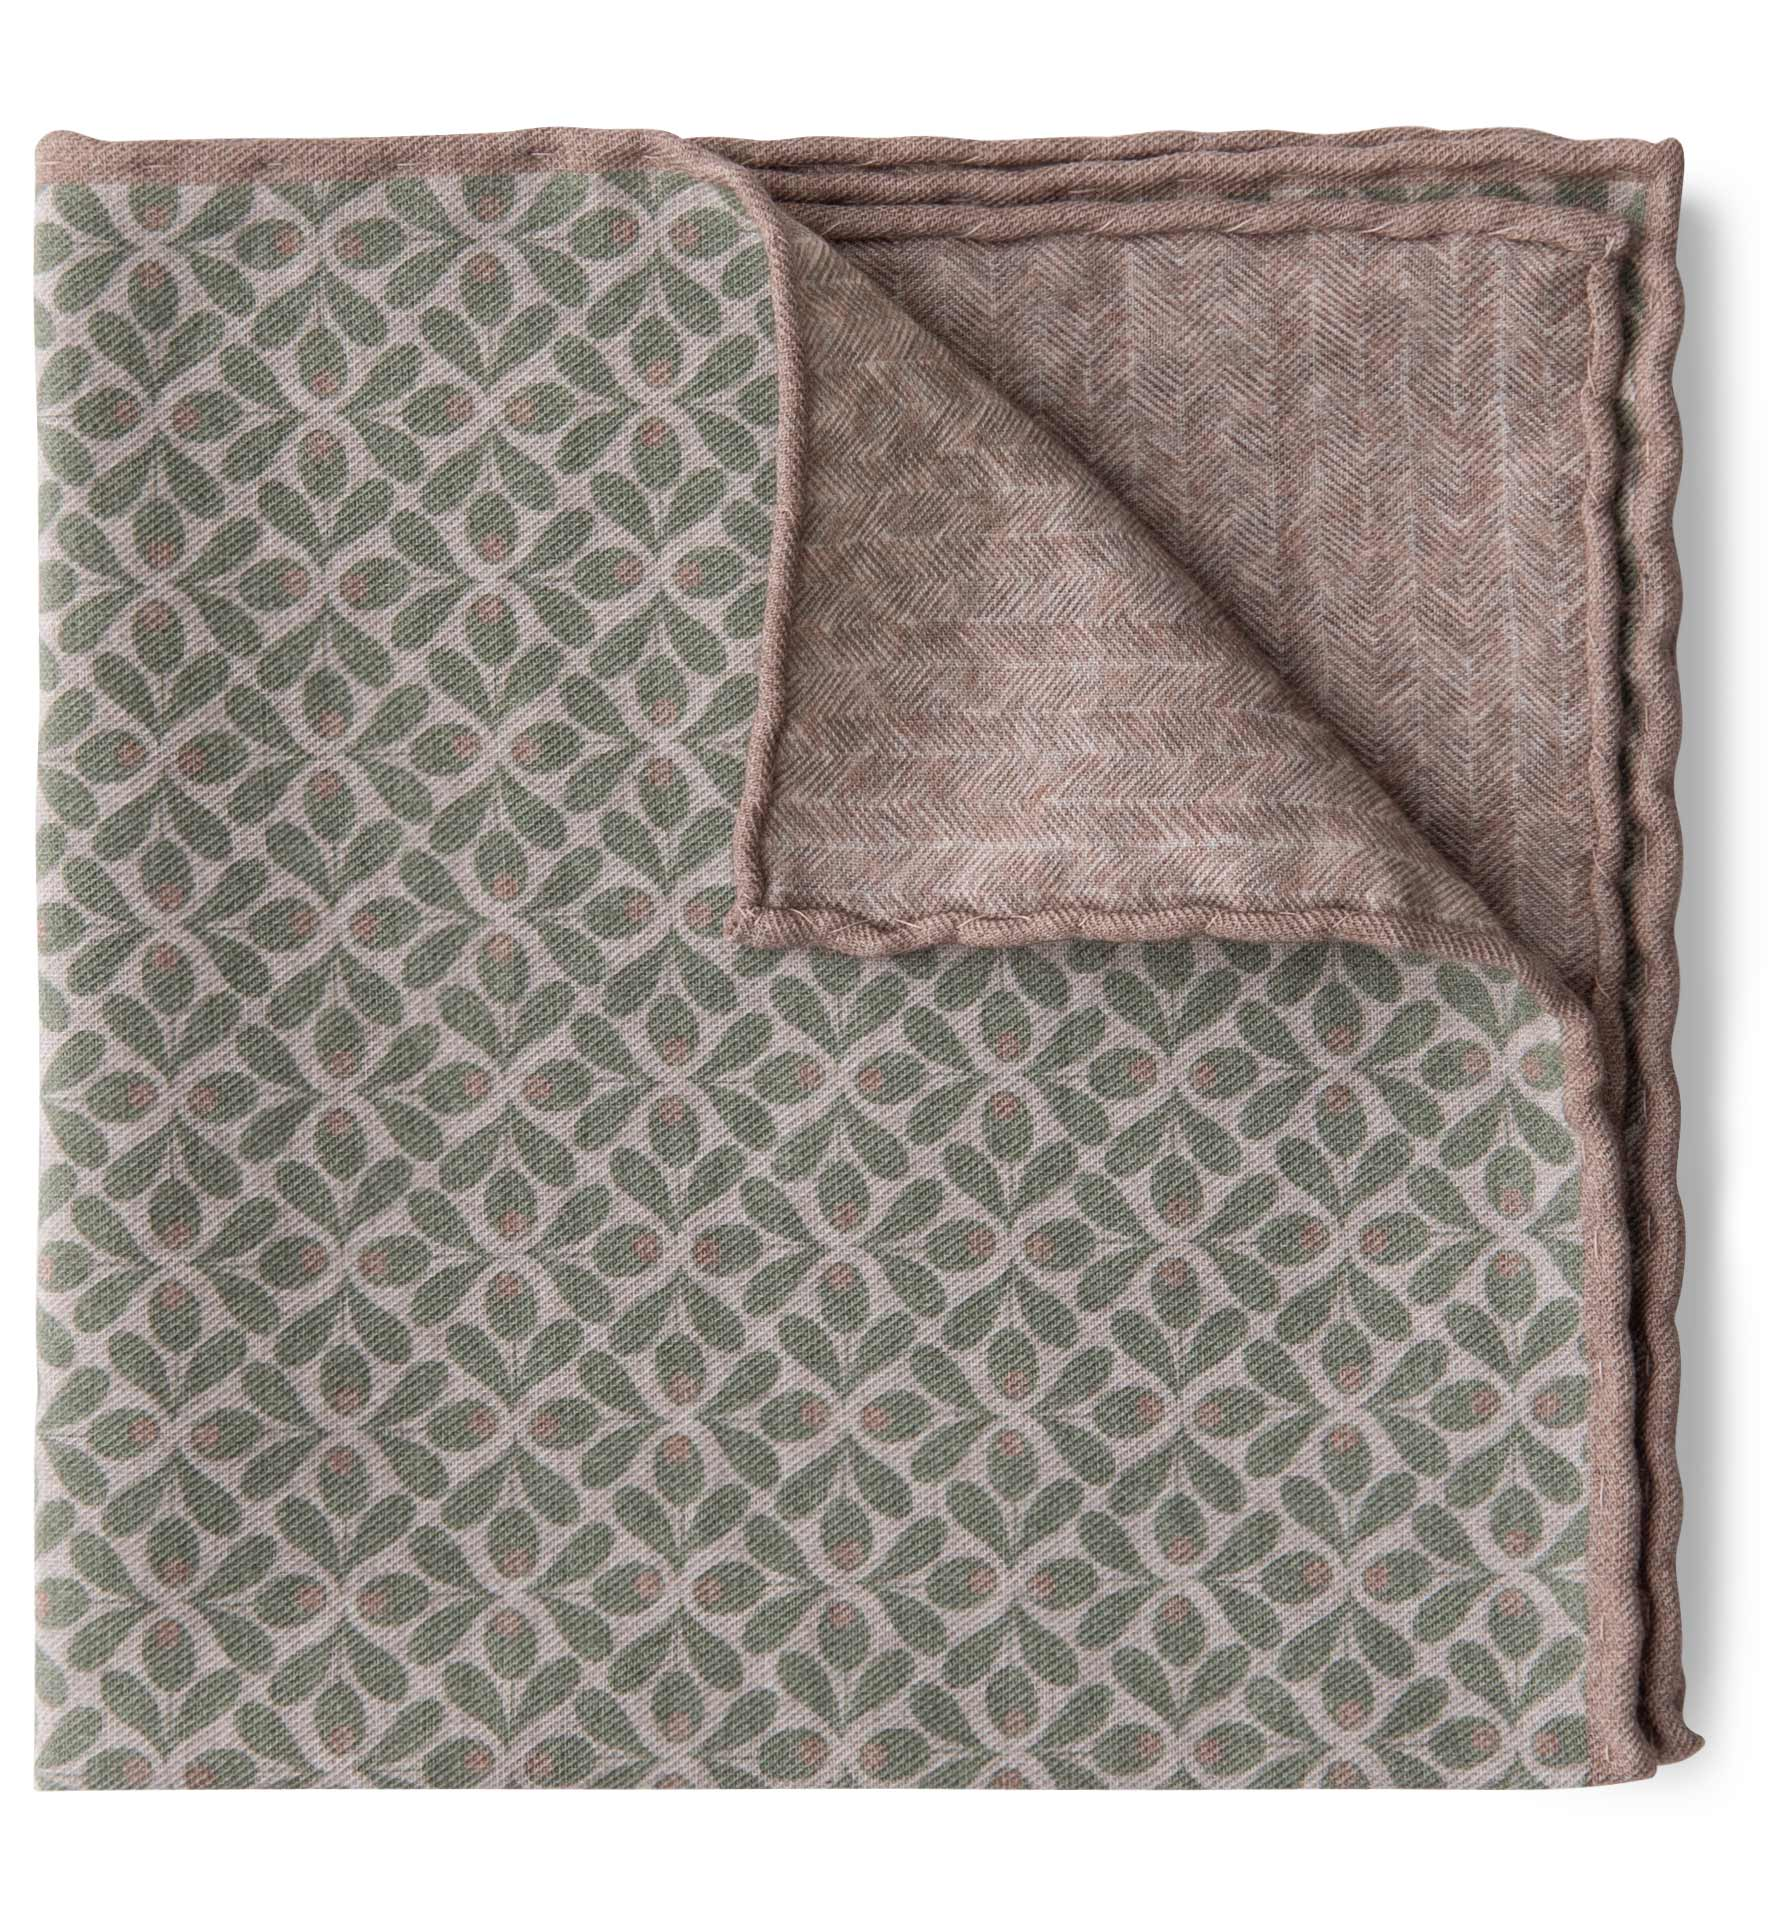 Zoom Image of Sage and Sand Geometric Floral Print Pocket Square